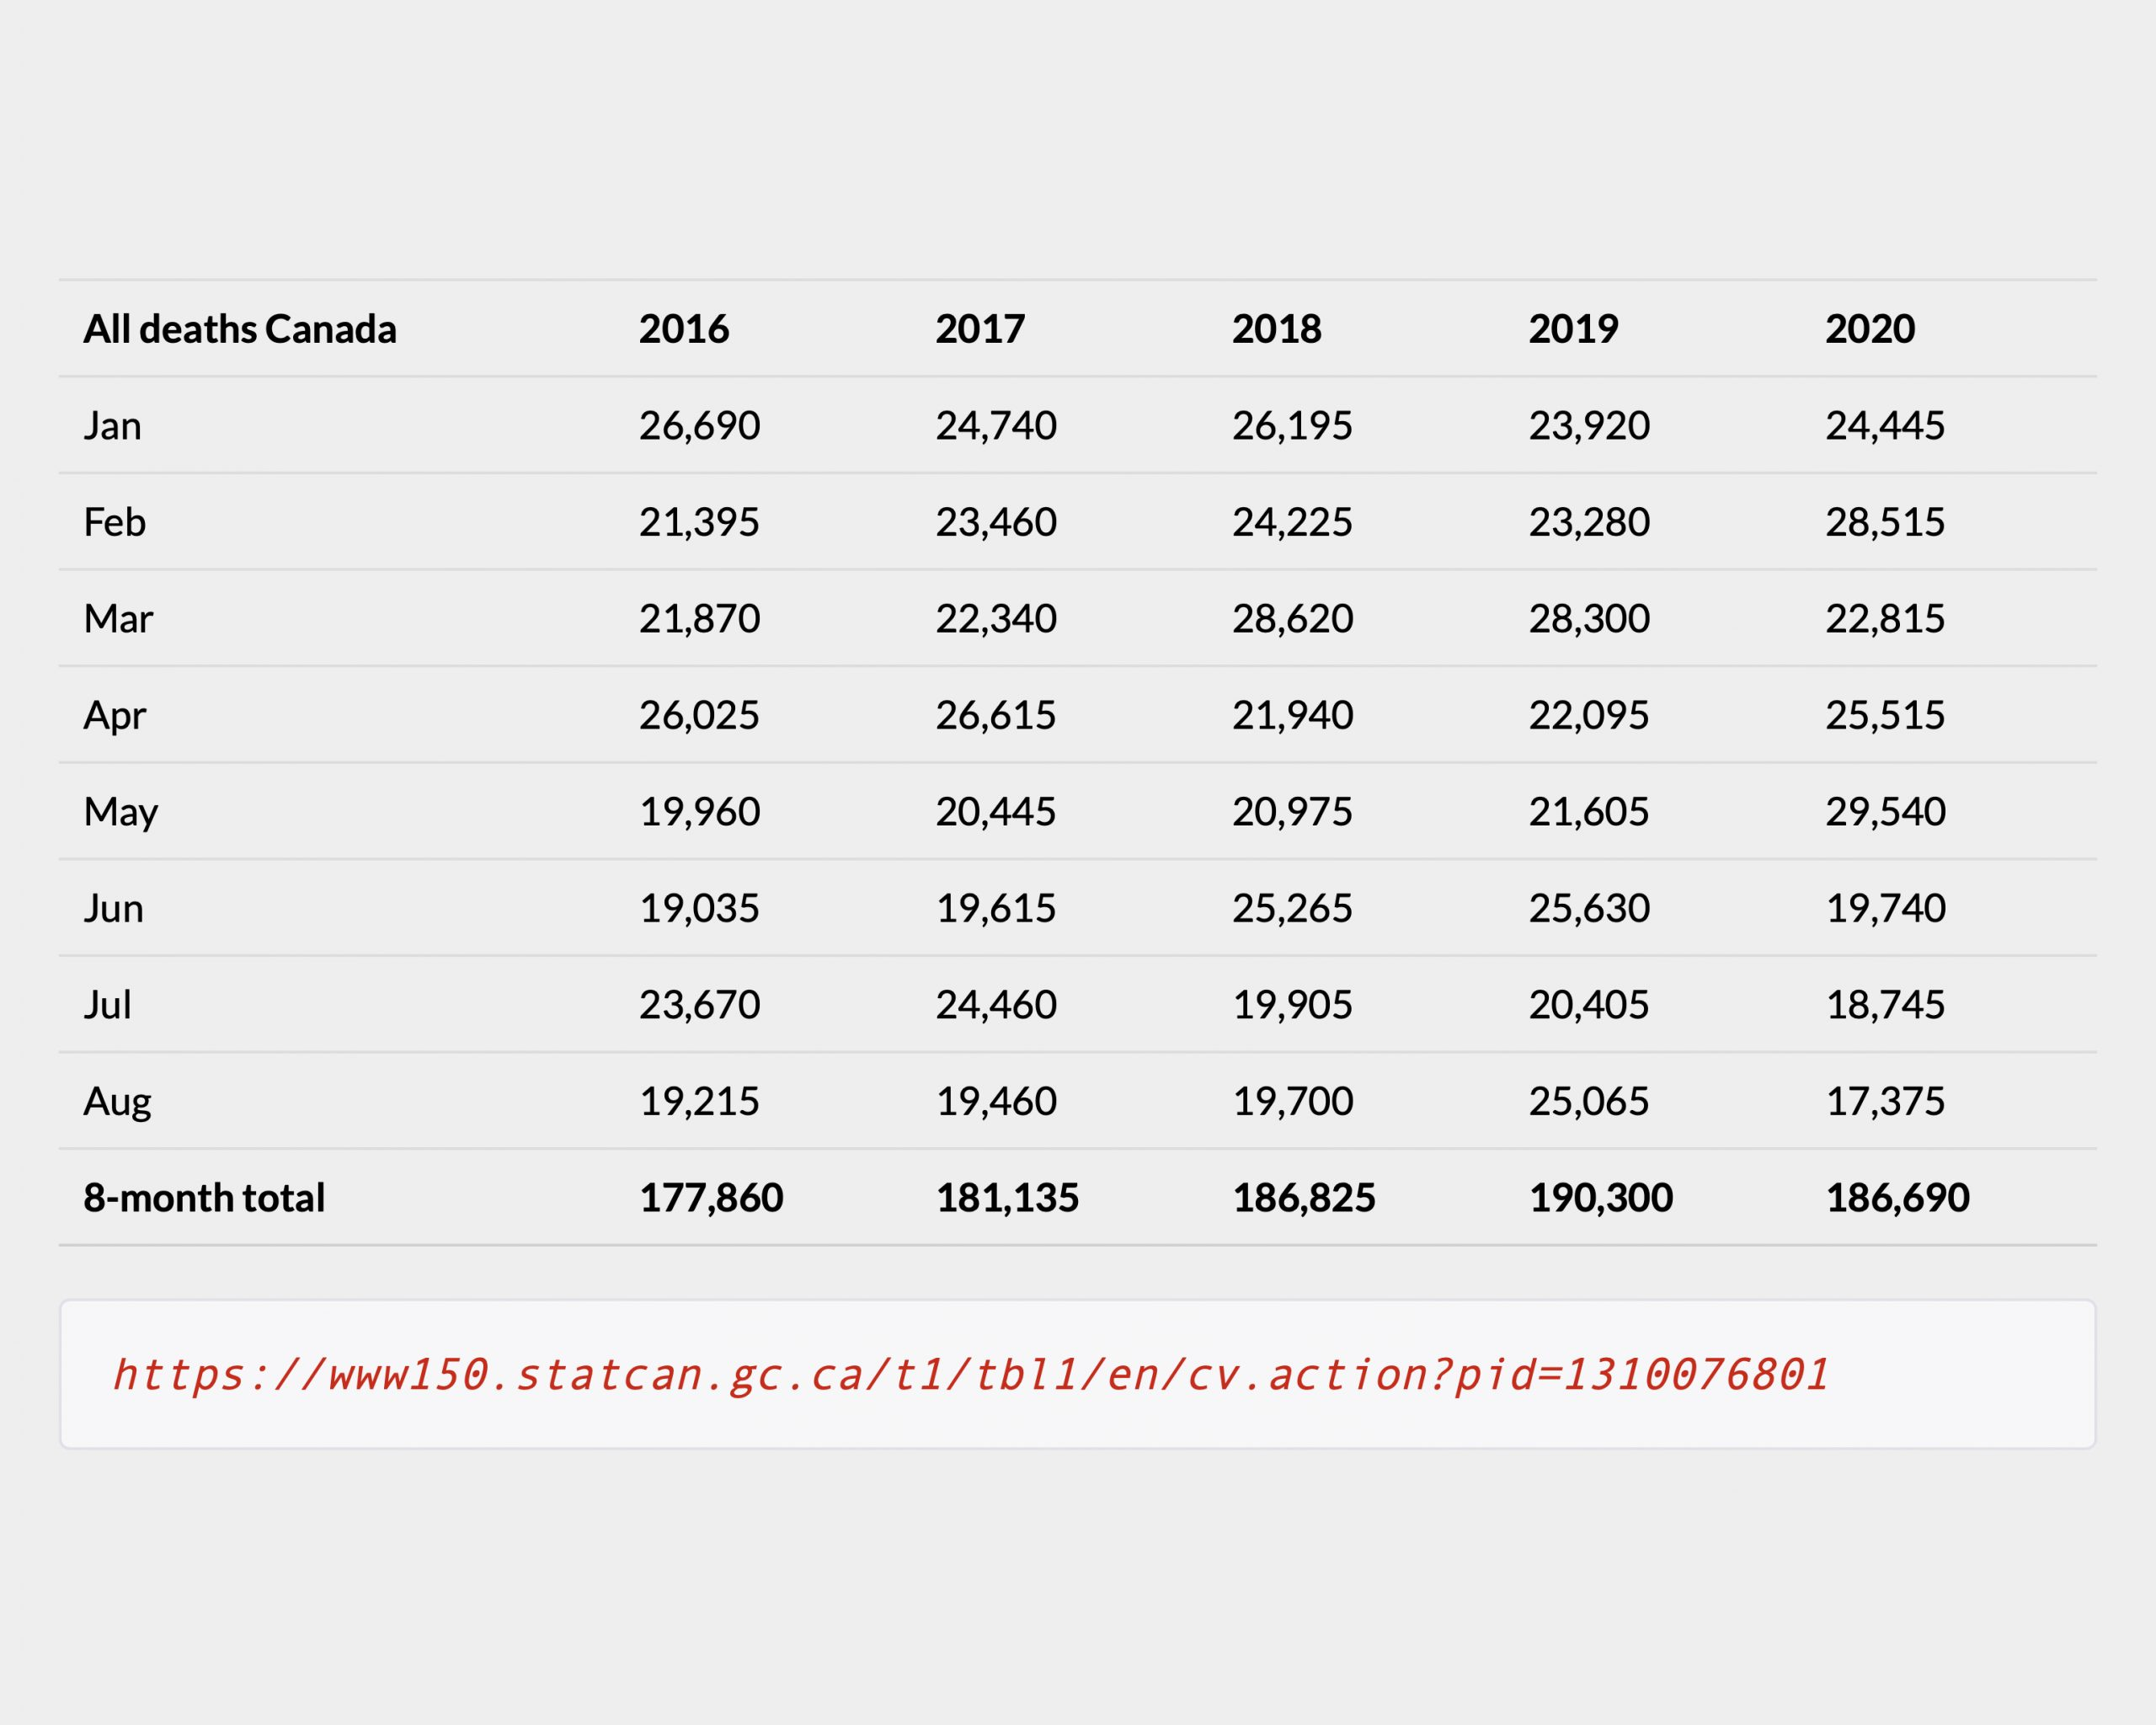 Ontario all cause mortality 2016 - 2020